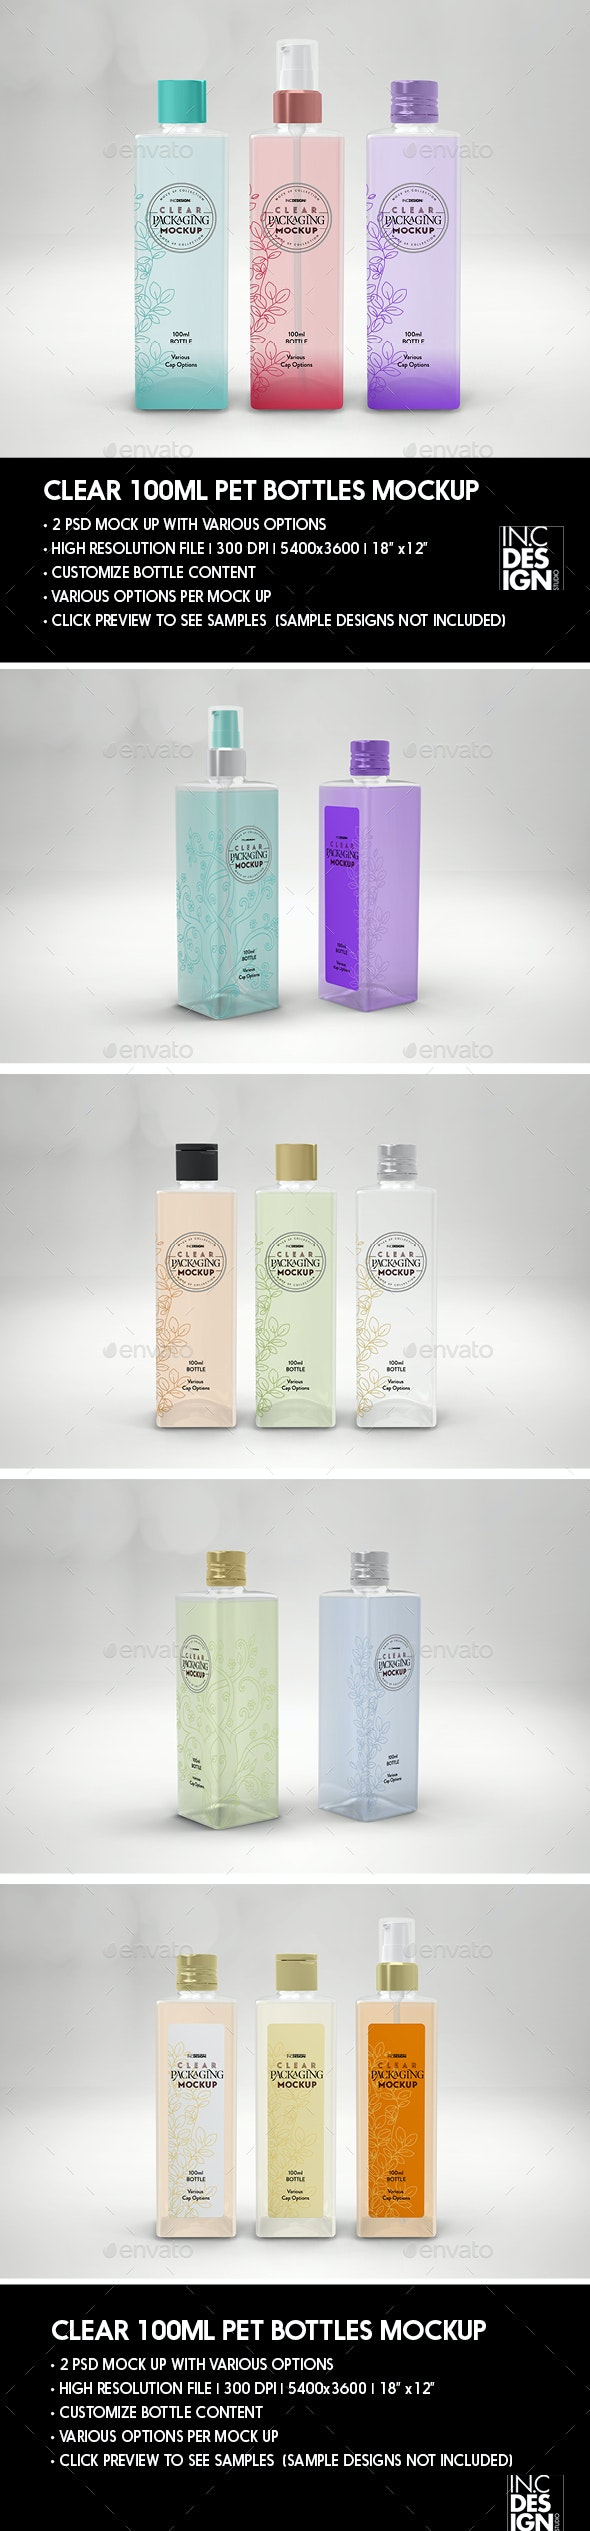 Clear 100ml Square PET Bottles Packaging Mockup - Beauty Packaging